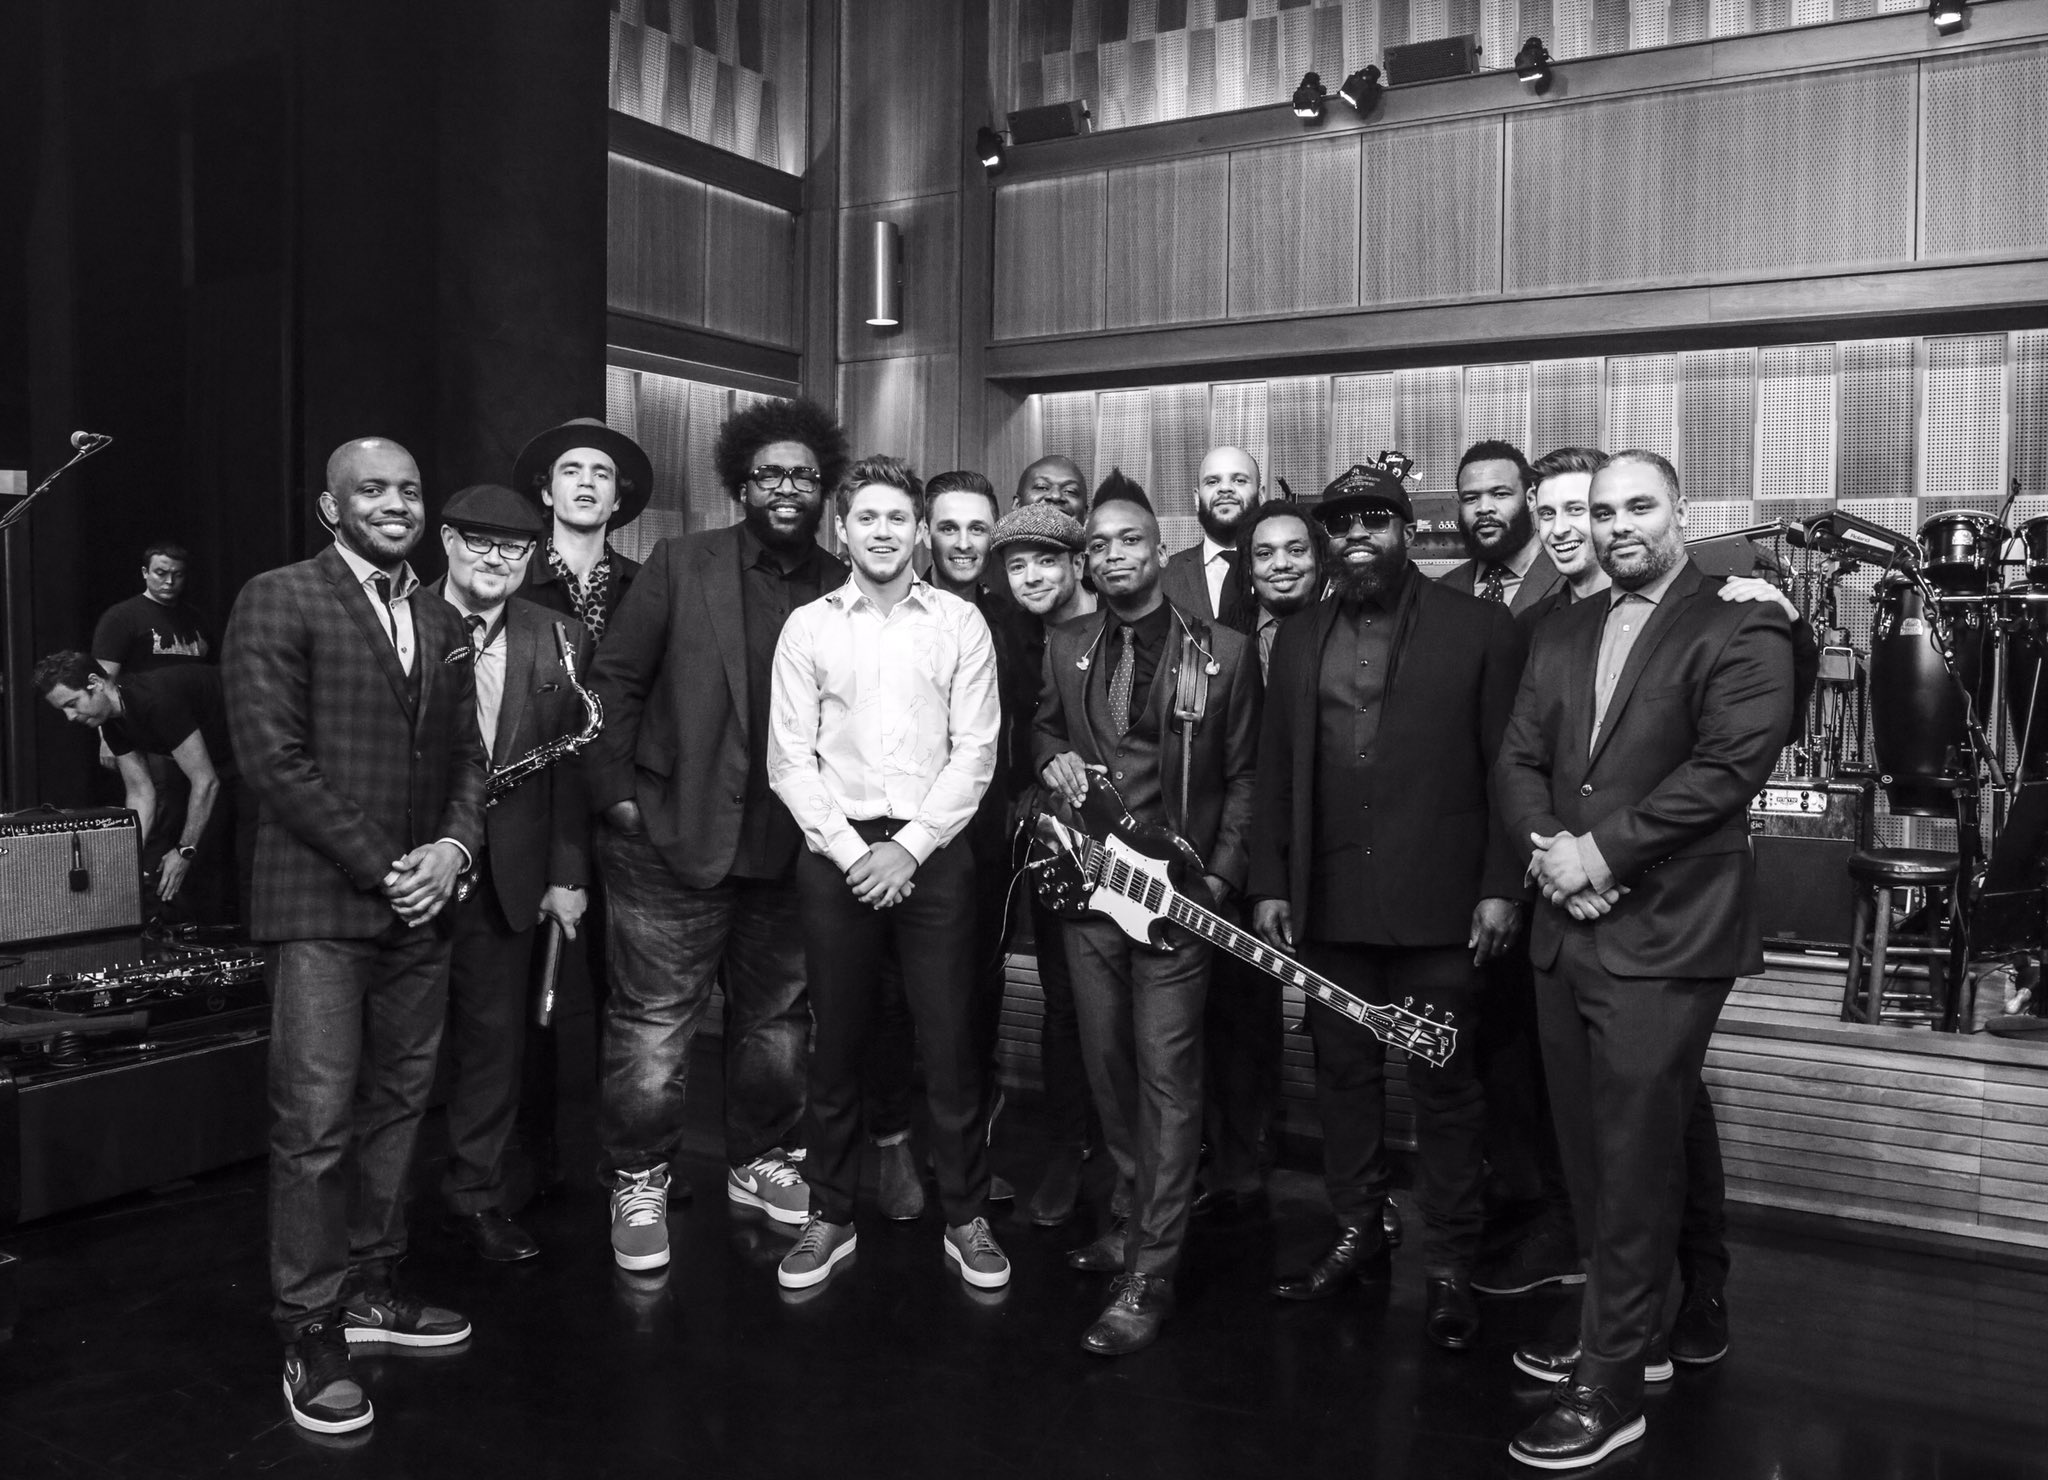 geeking out on a different level with these legends , @theroots. https://t.co/cSAgvQvJim